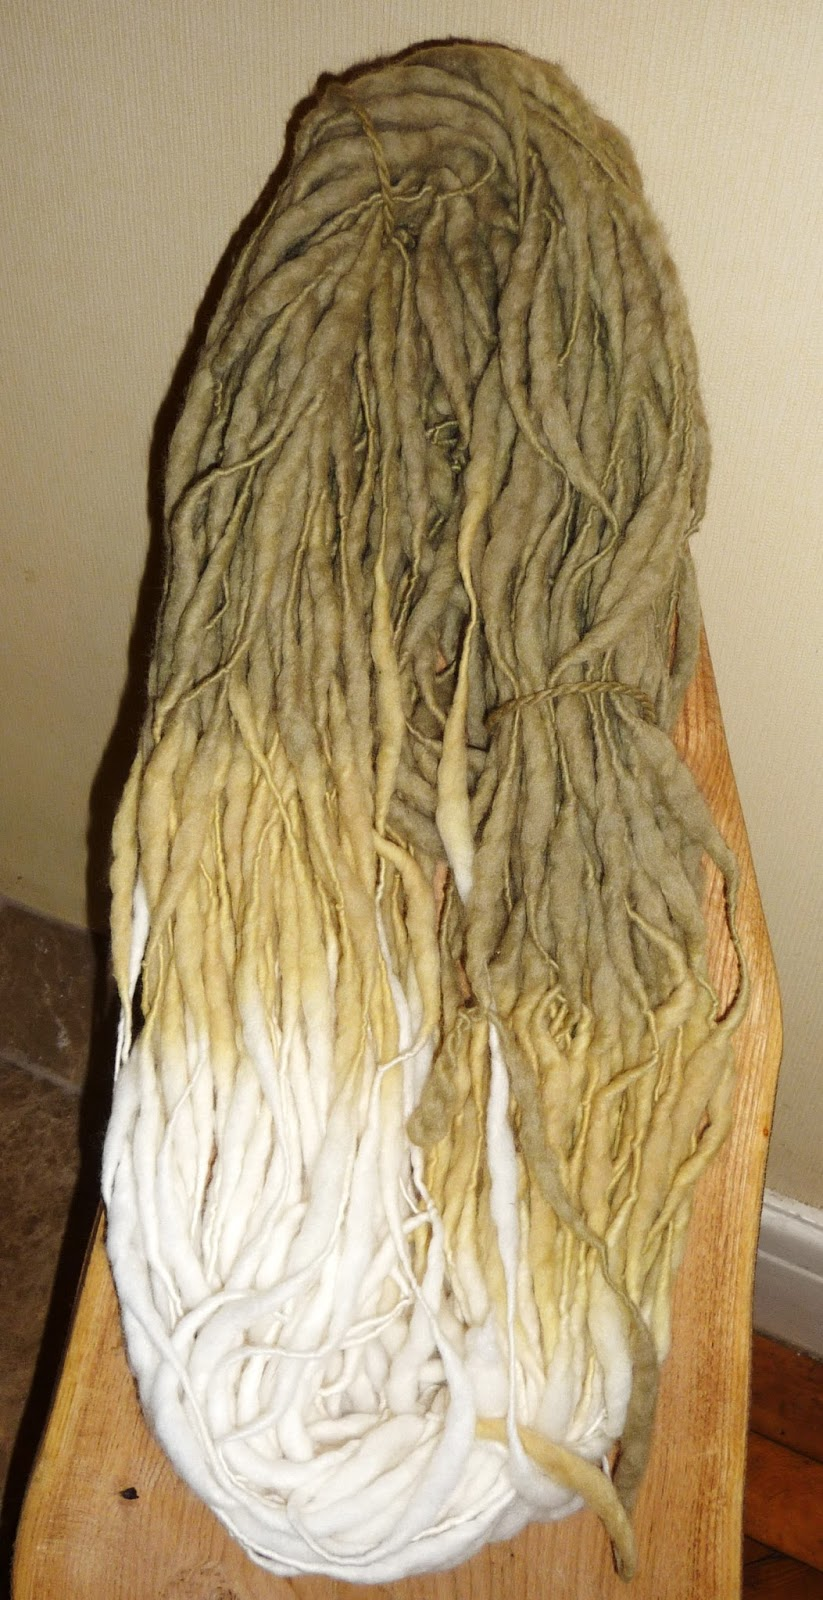 Wool - Tribulations of Hand Spinning and Herbal Dyeing: Early Worm Cowl Knitt...